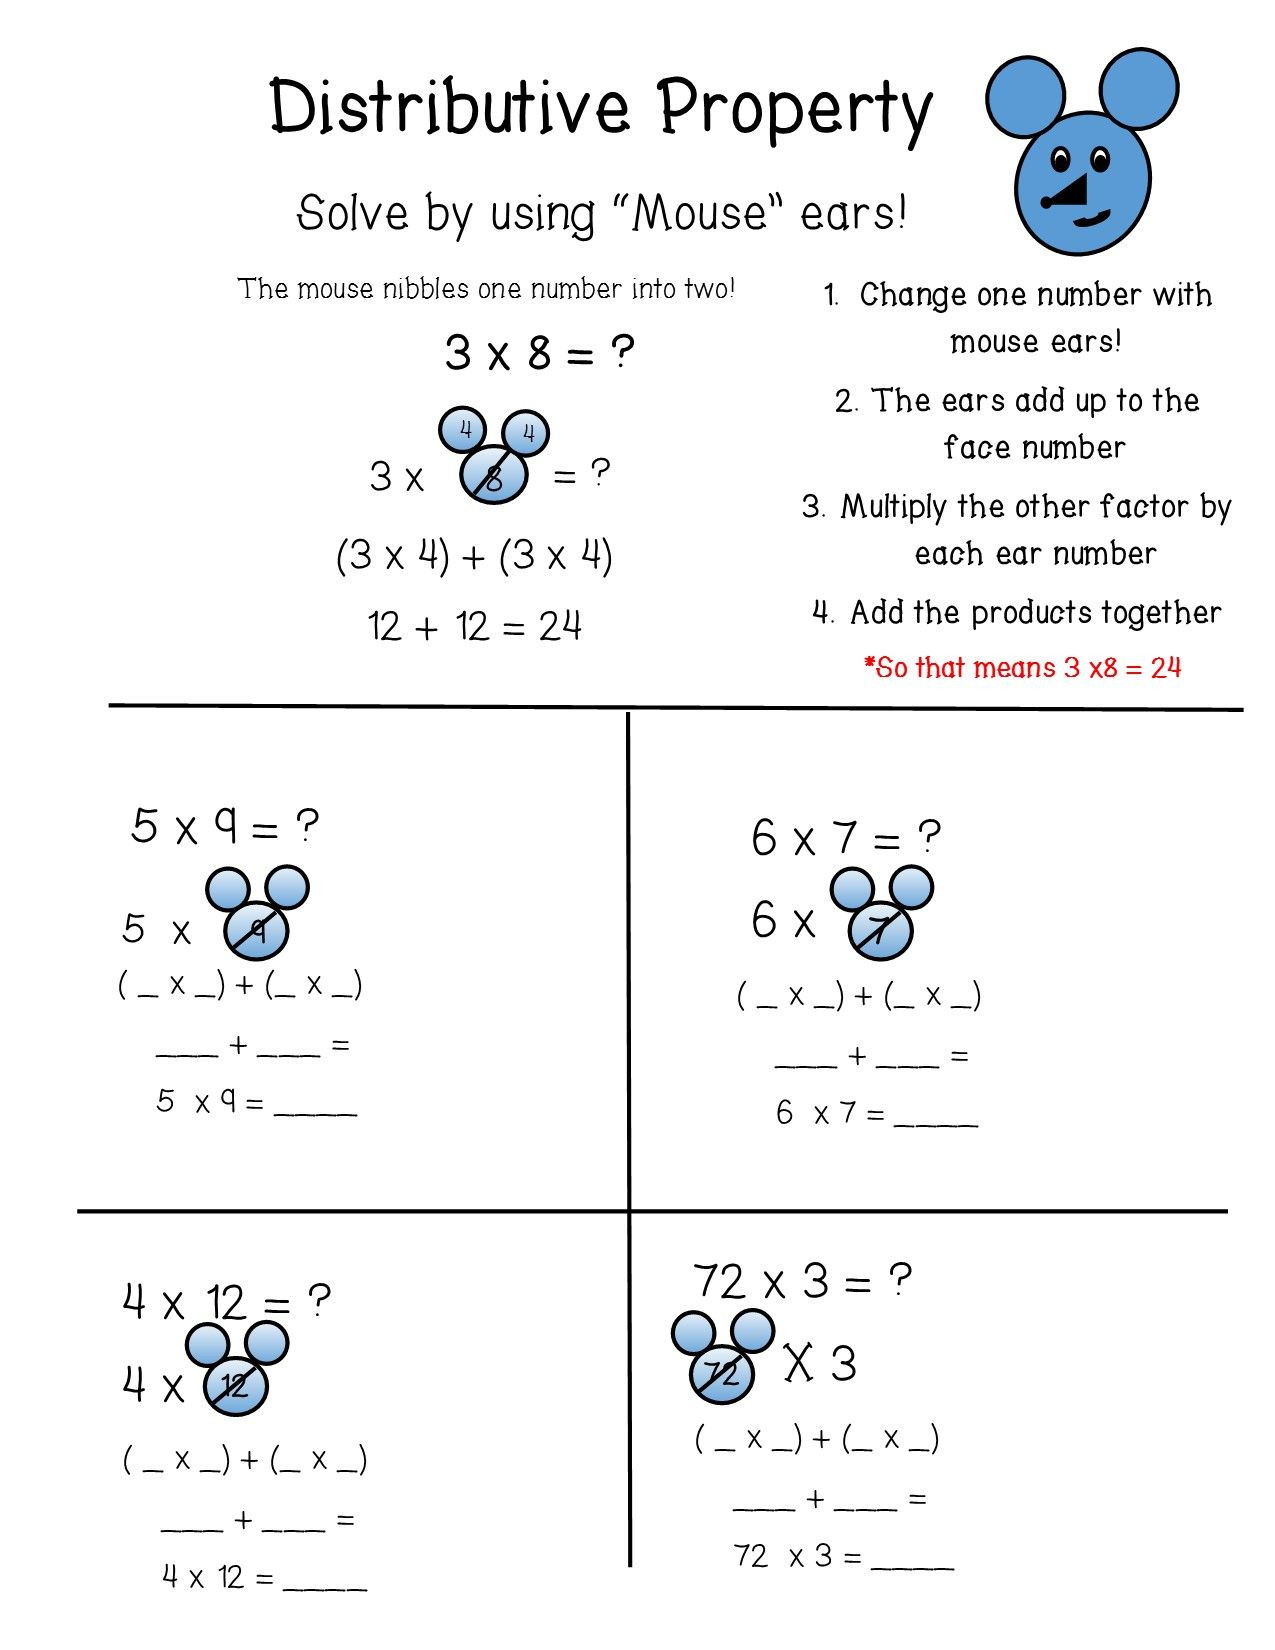 Distributive Property Worksheet 4th Grade the Distributive Property Of Multiplication is Broken Down